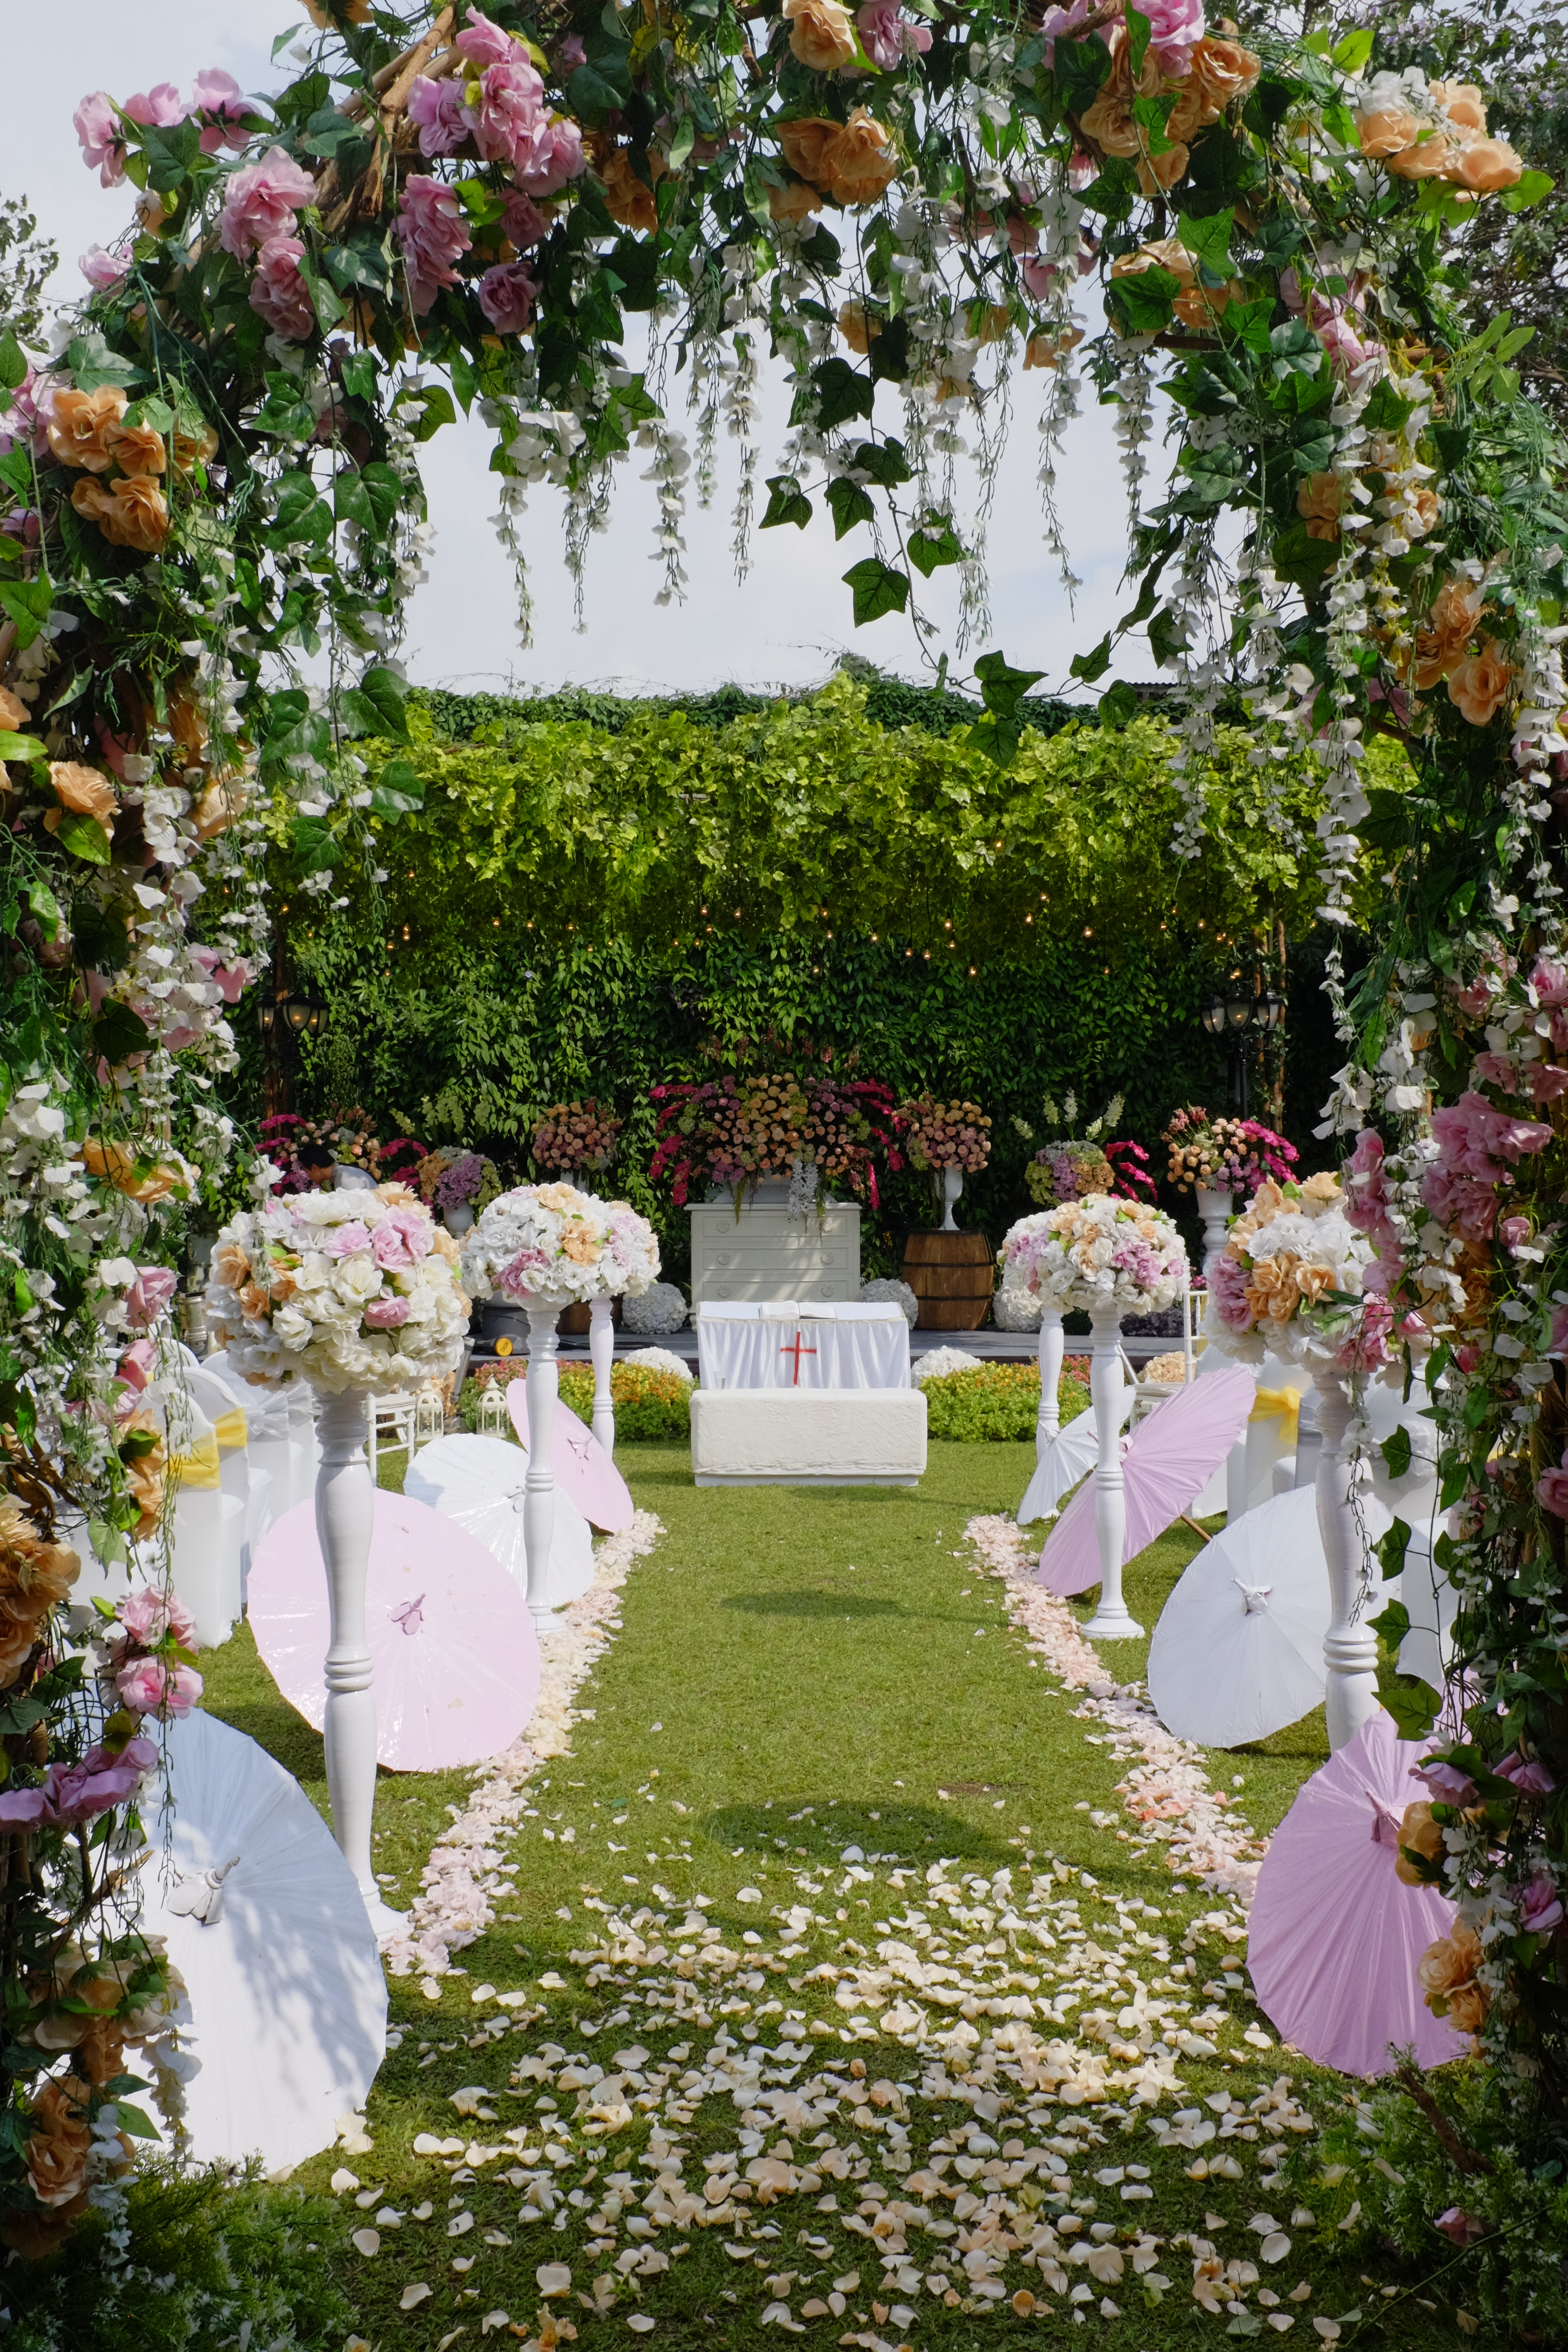 Towers Garden Wedding Decoration by Sheraton Bandung Hotel & Towers ...